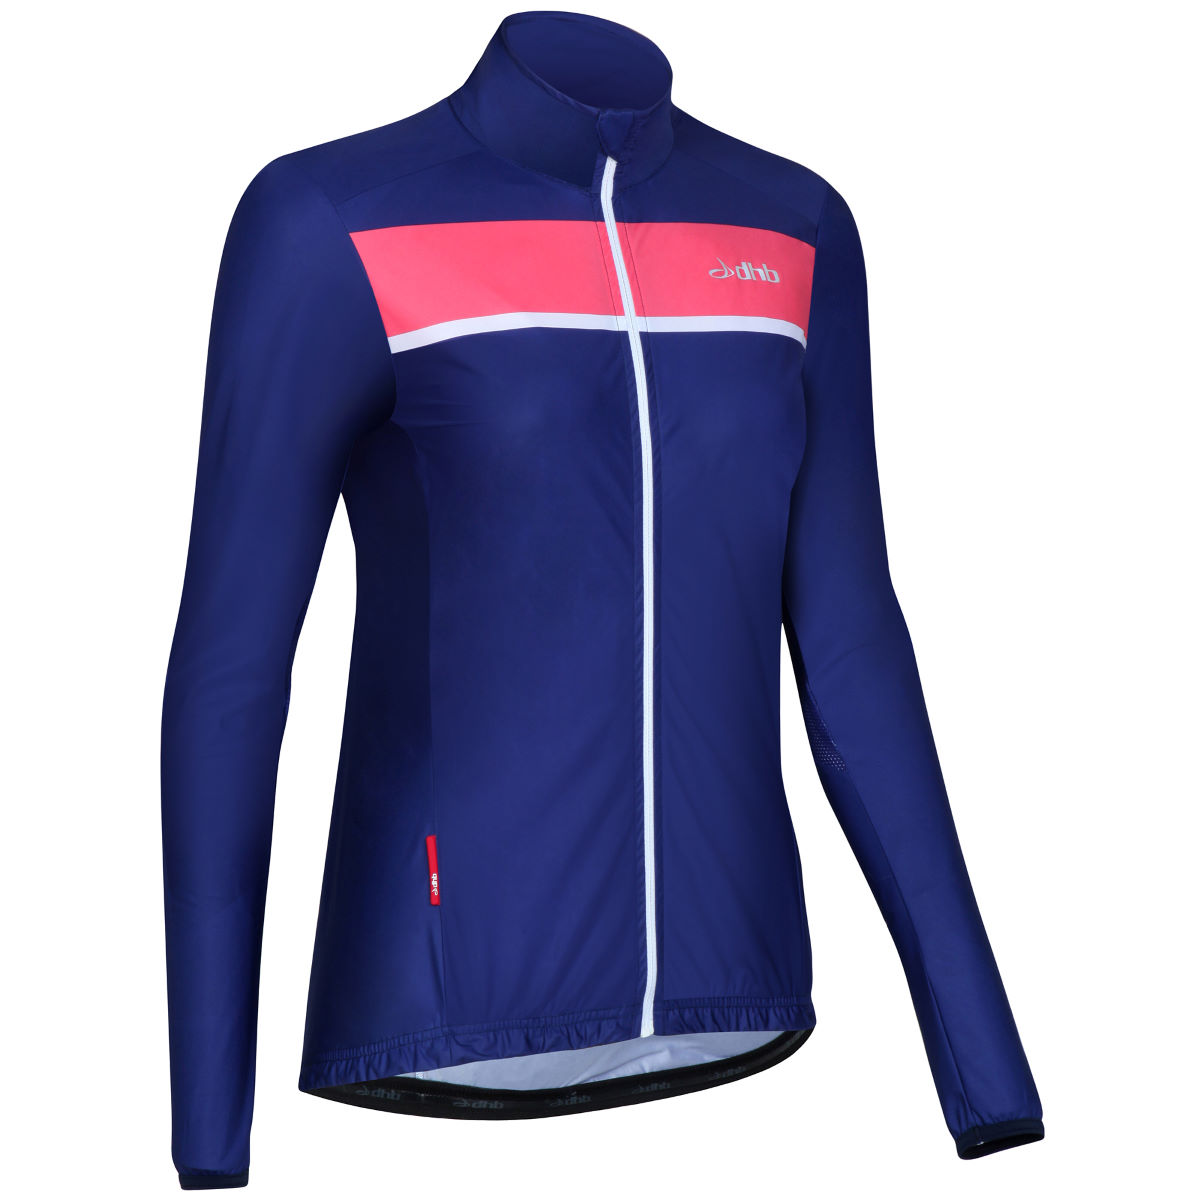 Veste coupe-vent Femme dhb Classic - 8 UK Navy/Pink Coupe-vents vélo